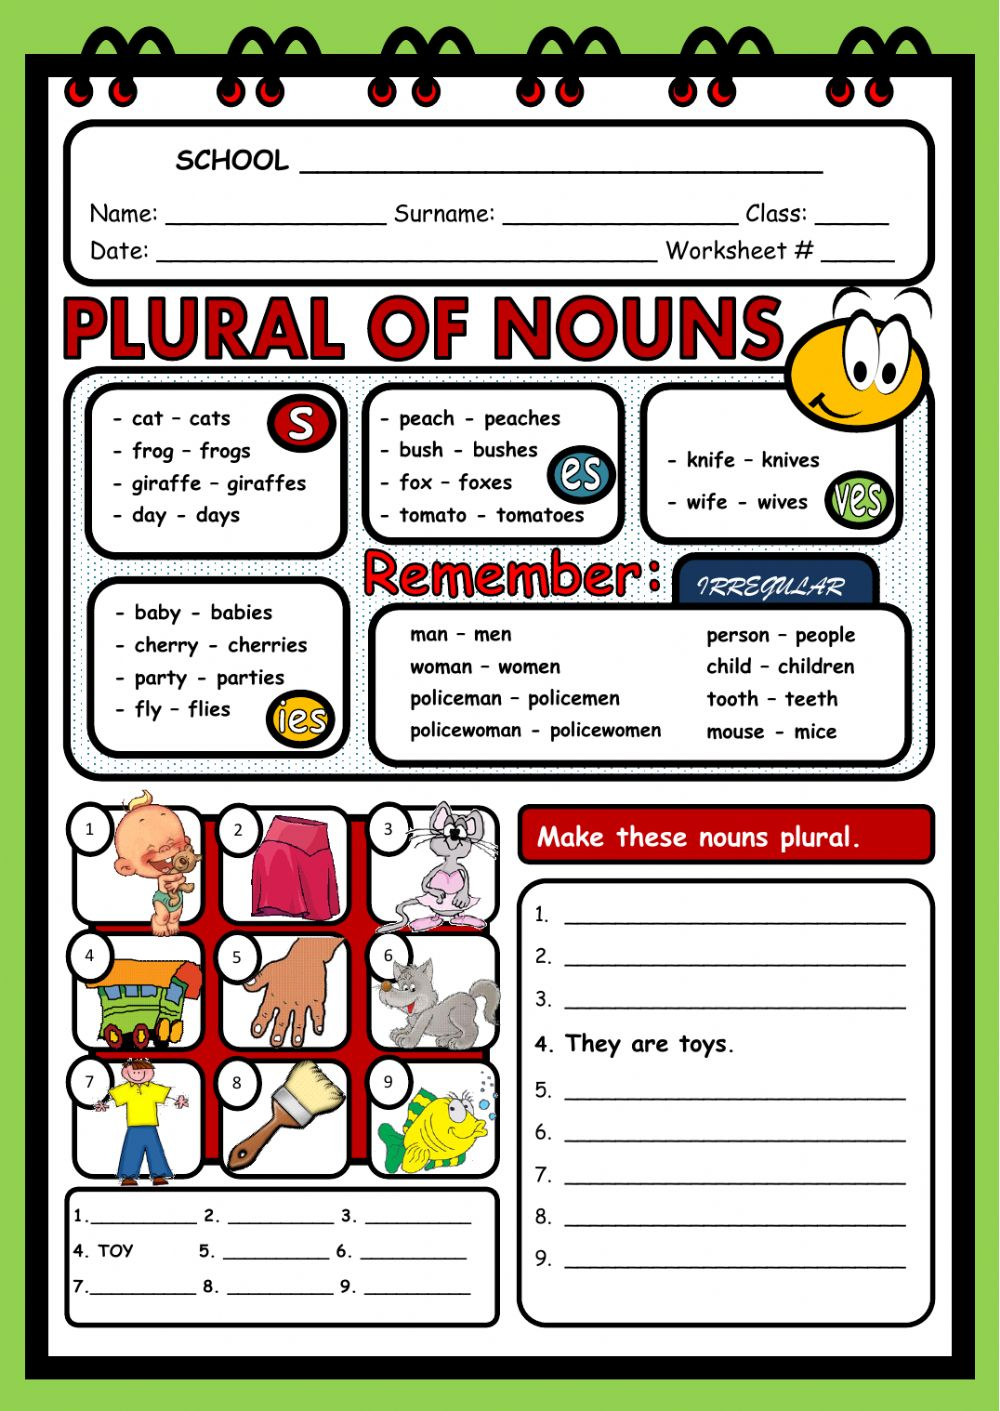 hight resolution of Plural of nouns worksheet